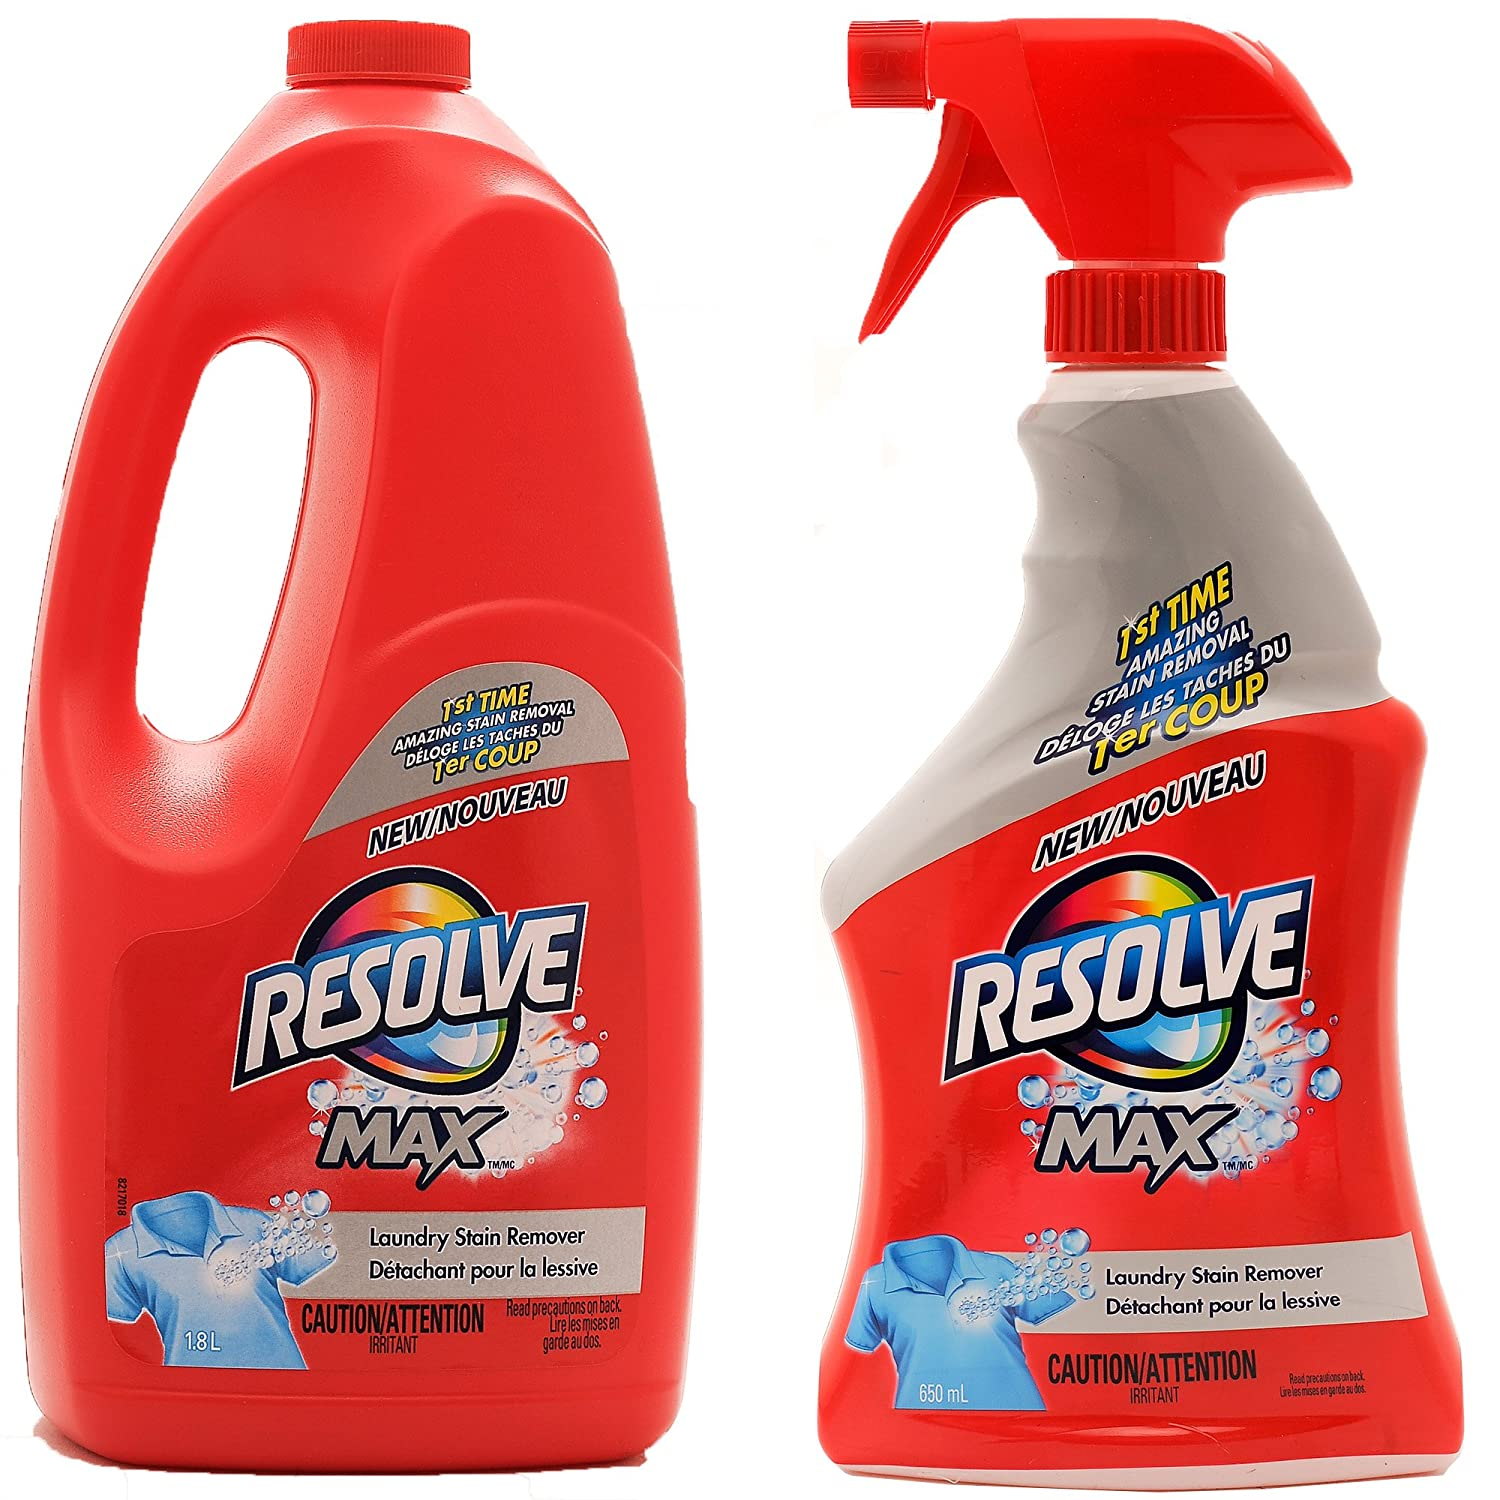 Resolve Max (Spray 'N Wash) Trigger & Refill Mega Value Pack, 22 fl.oz Trigger + 61 fl. oz. Refill (Total 83 fl. oz.)